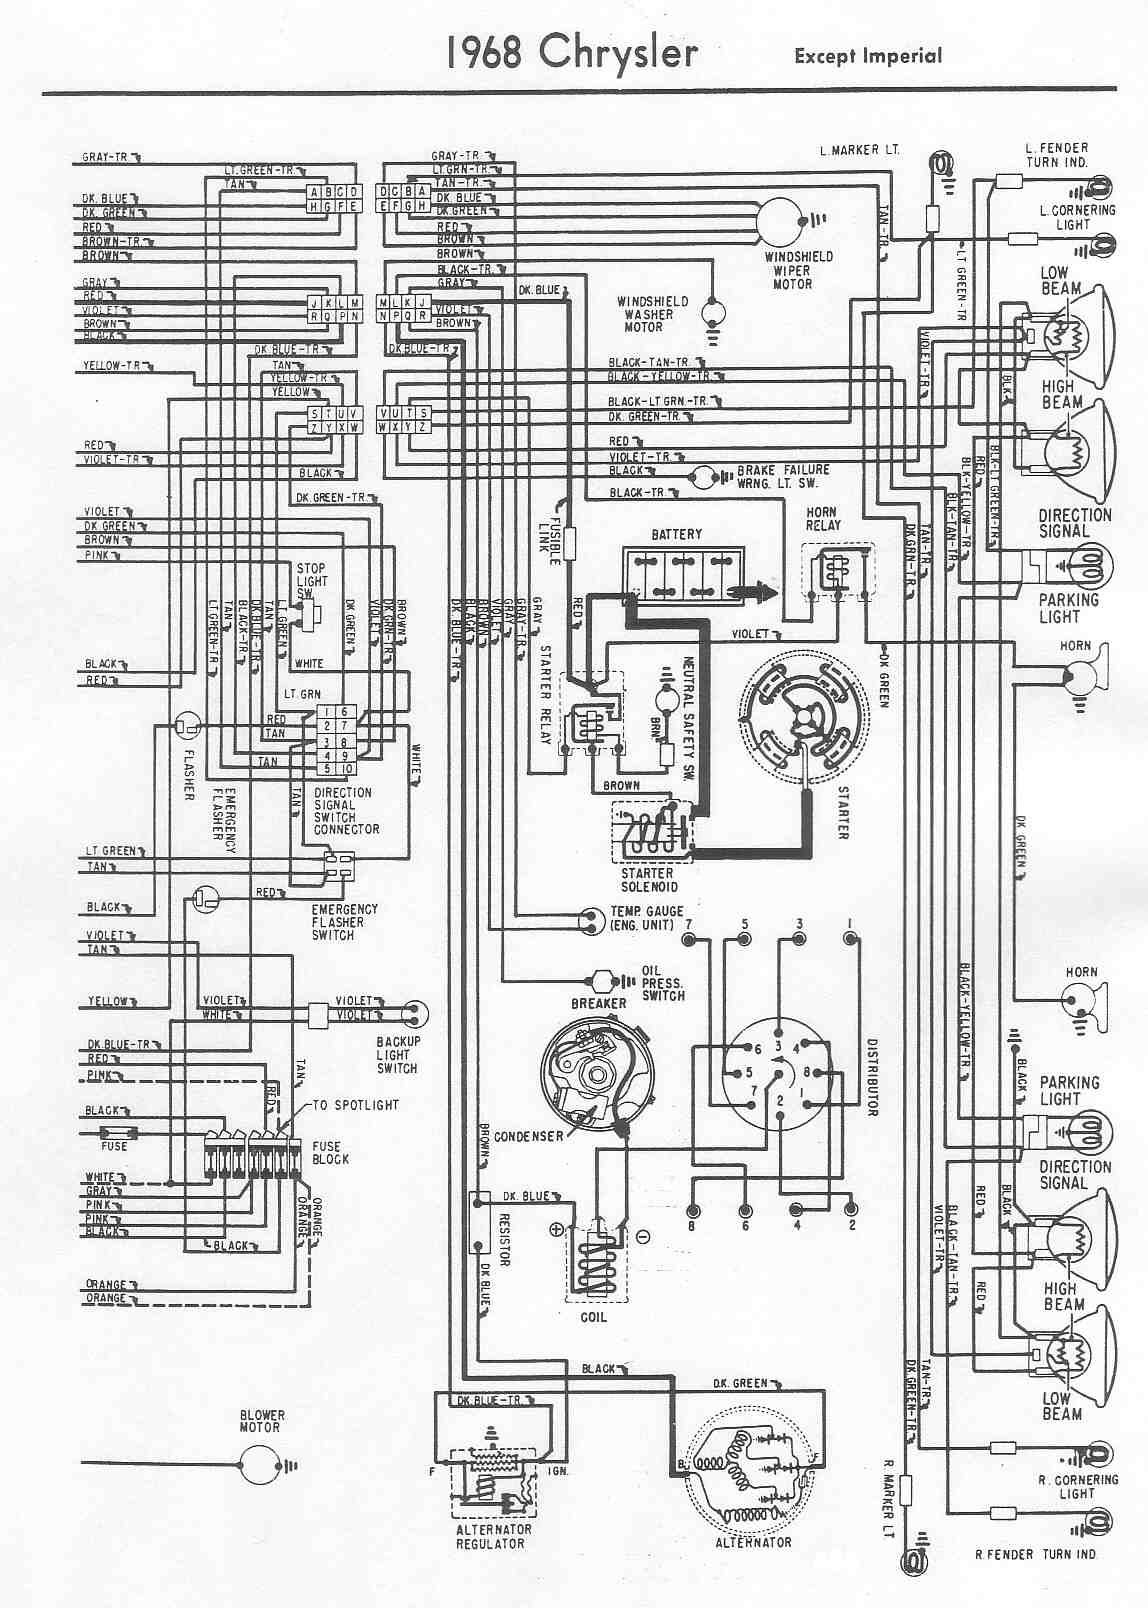 hight resolution of wiring diagram in addition 1972 chevy c10 wiring diagram on 68 1969 pontiac gto wiring diagram 68 gto dash wiring diagram